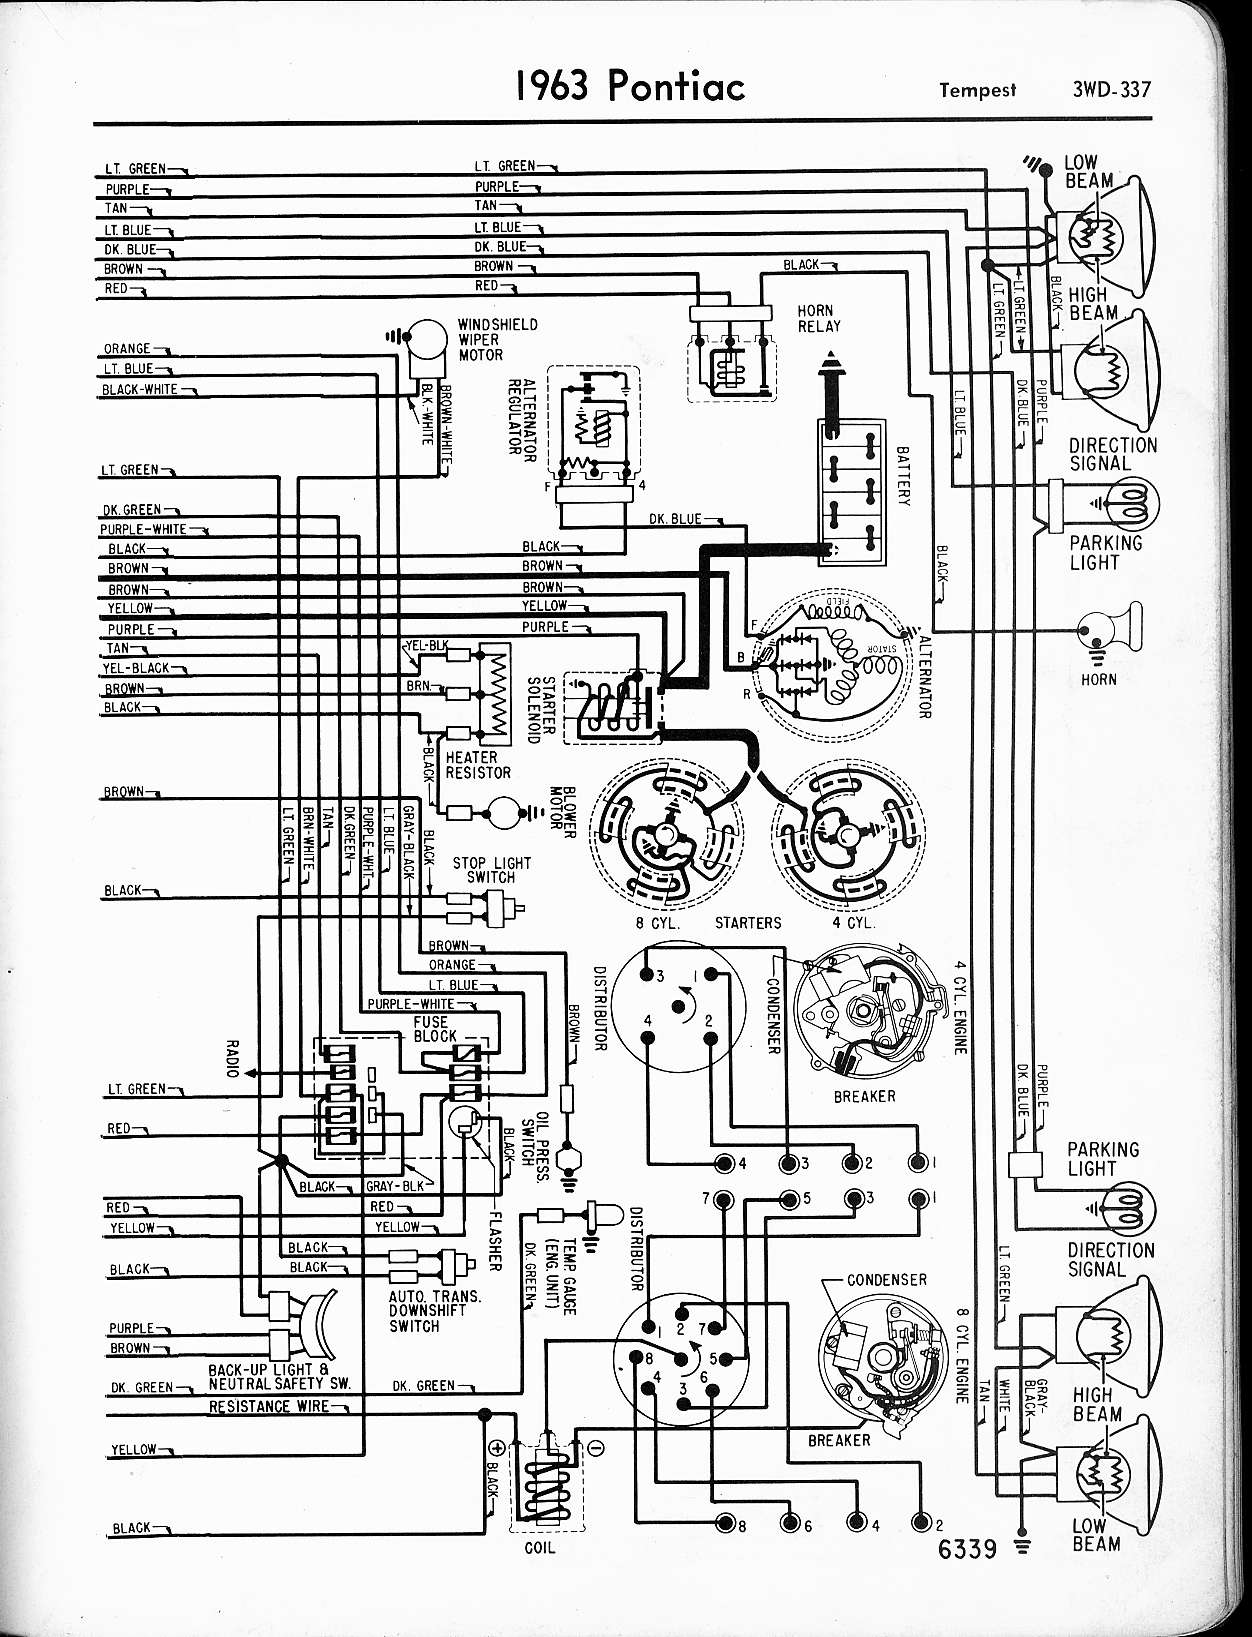 65 gto wiring diagram schematic just wiring data rh ag skiphire co uk 1968  pontiac gto wiring harness 1967 pontiac gto wiring harness